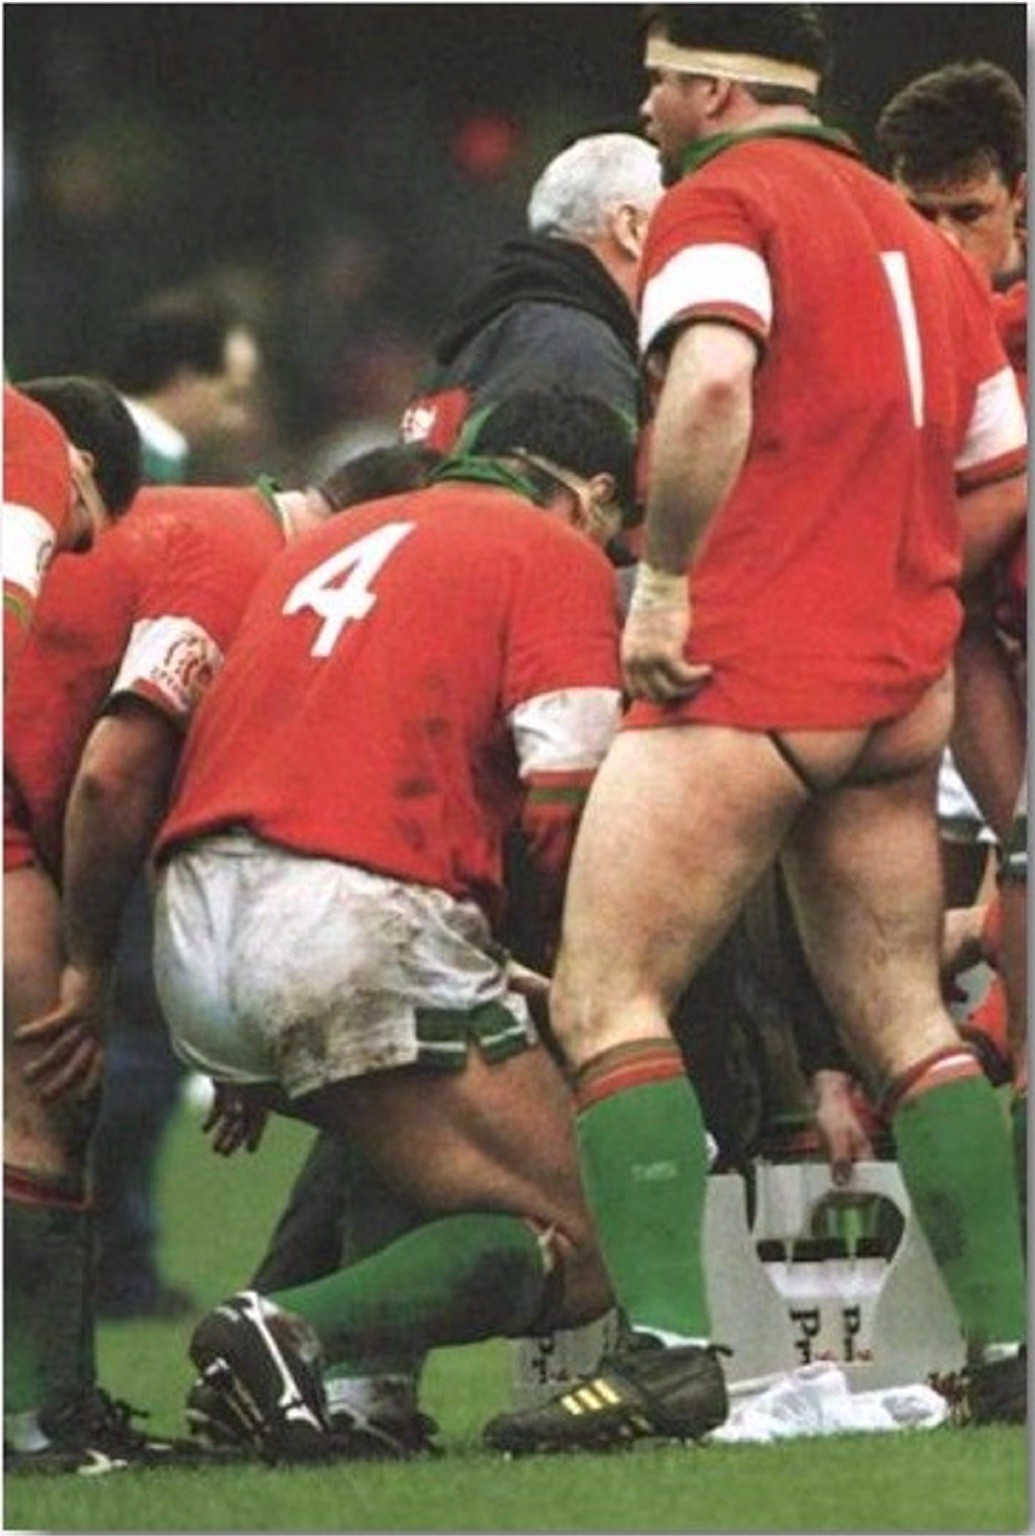 welsh-prop-change-shorts.jpg